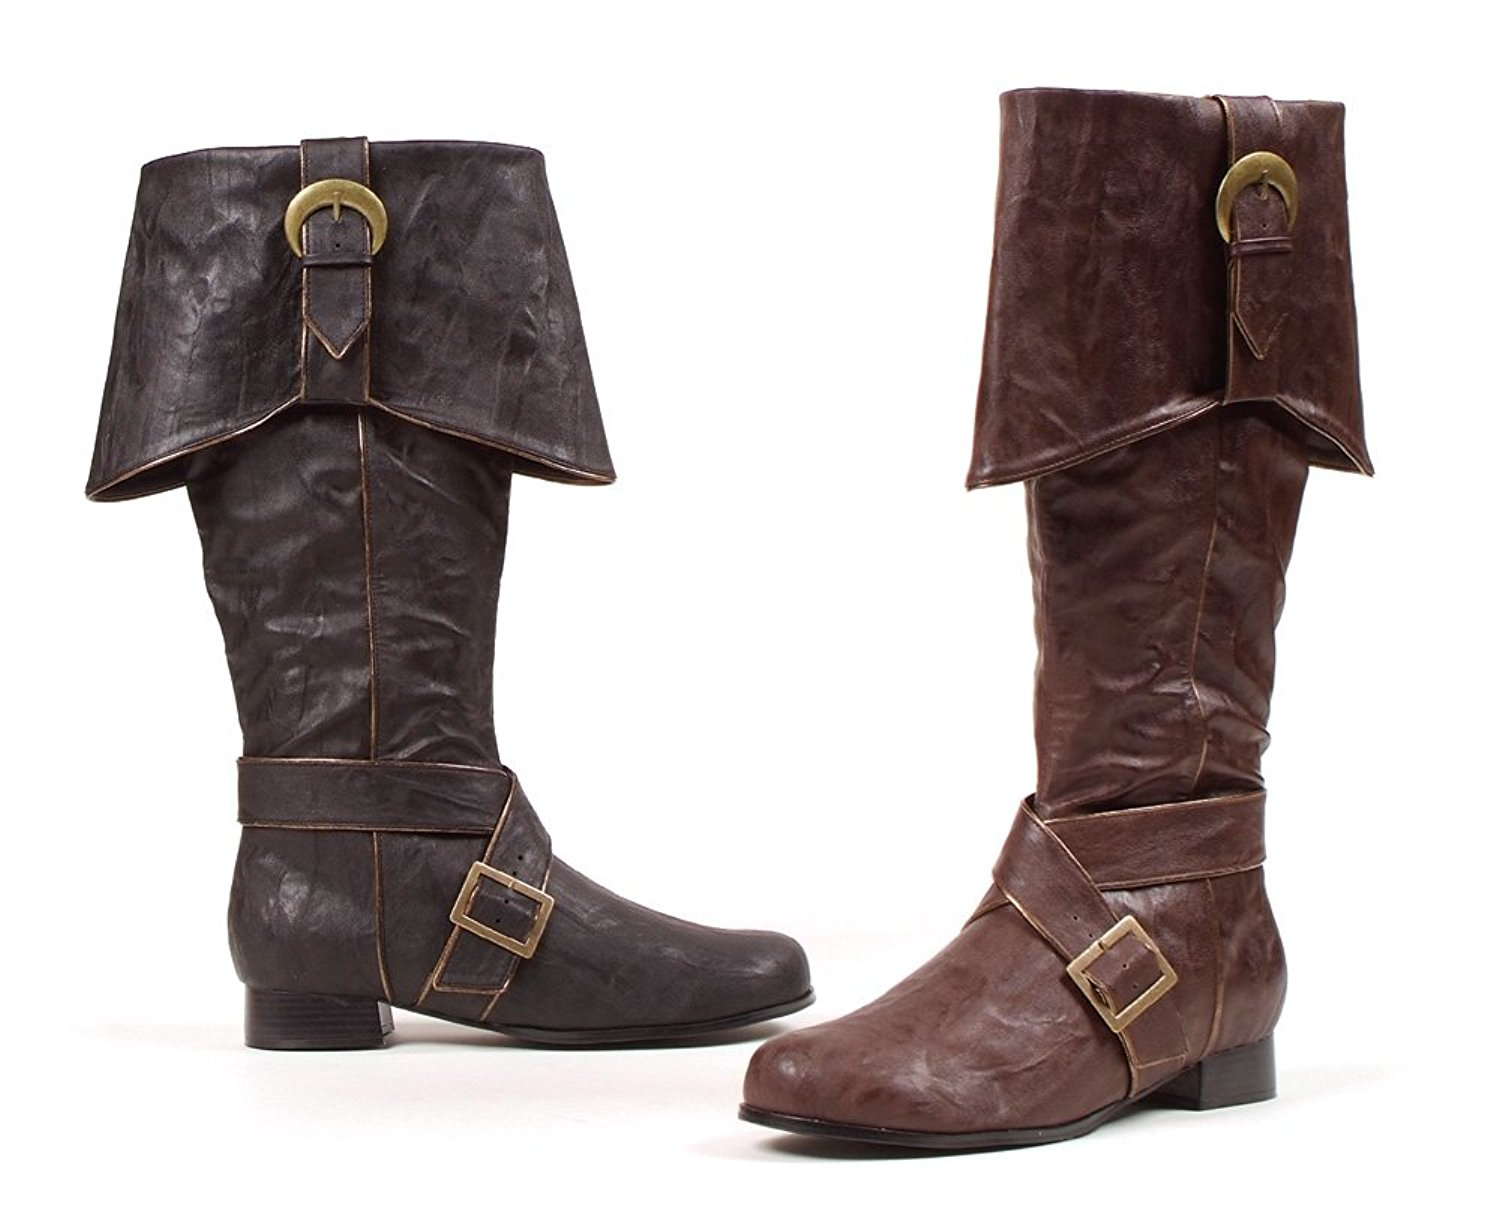 Men's Fold-over and Buckles Pirate Boots